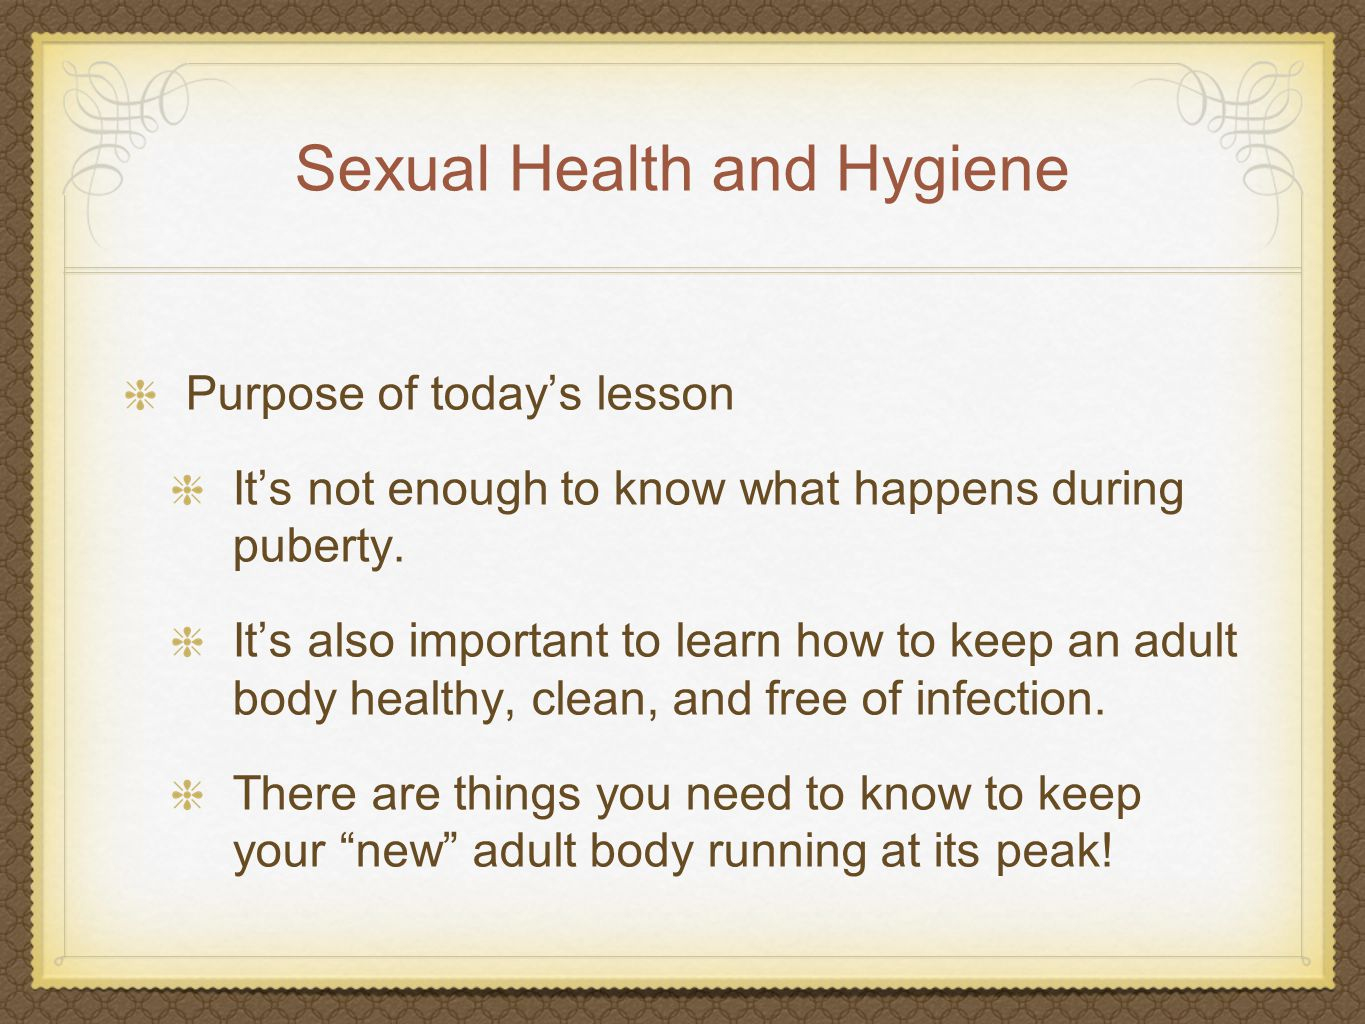 Sexual Health and Hygiene Sexual health and hygiene reference sheet.